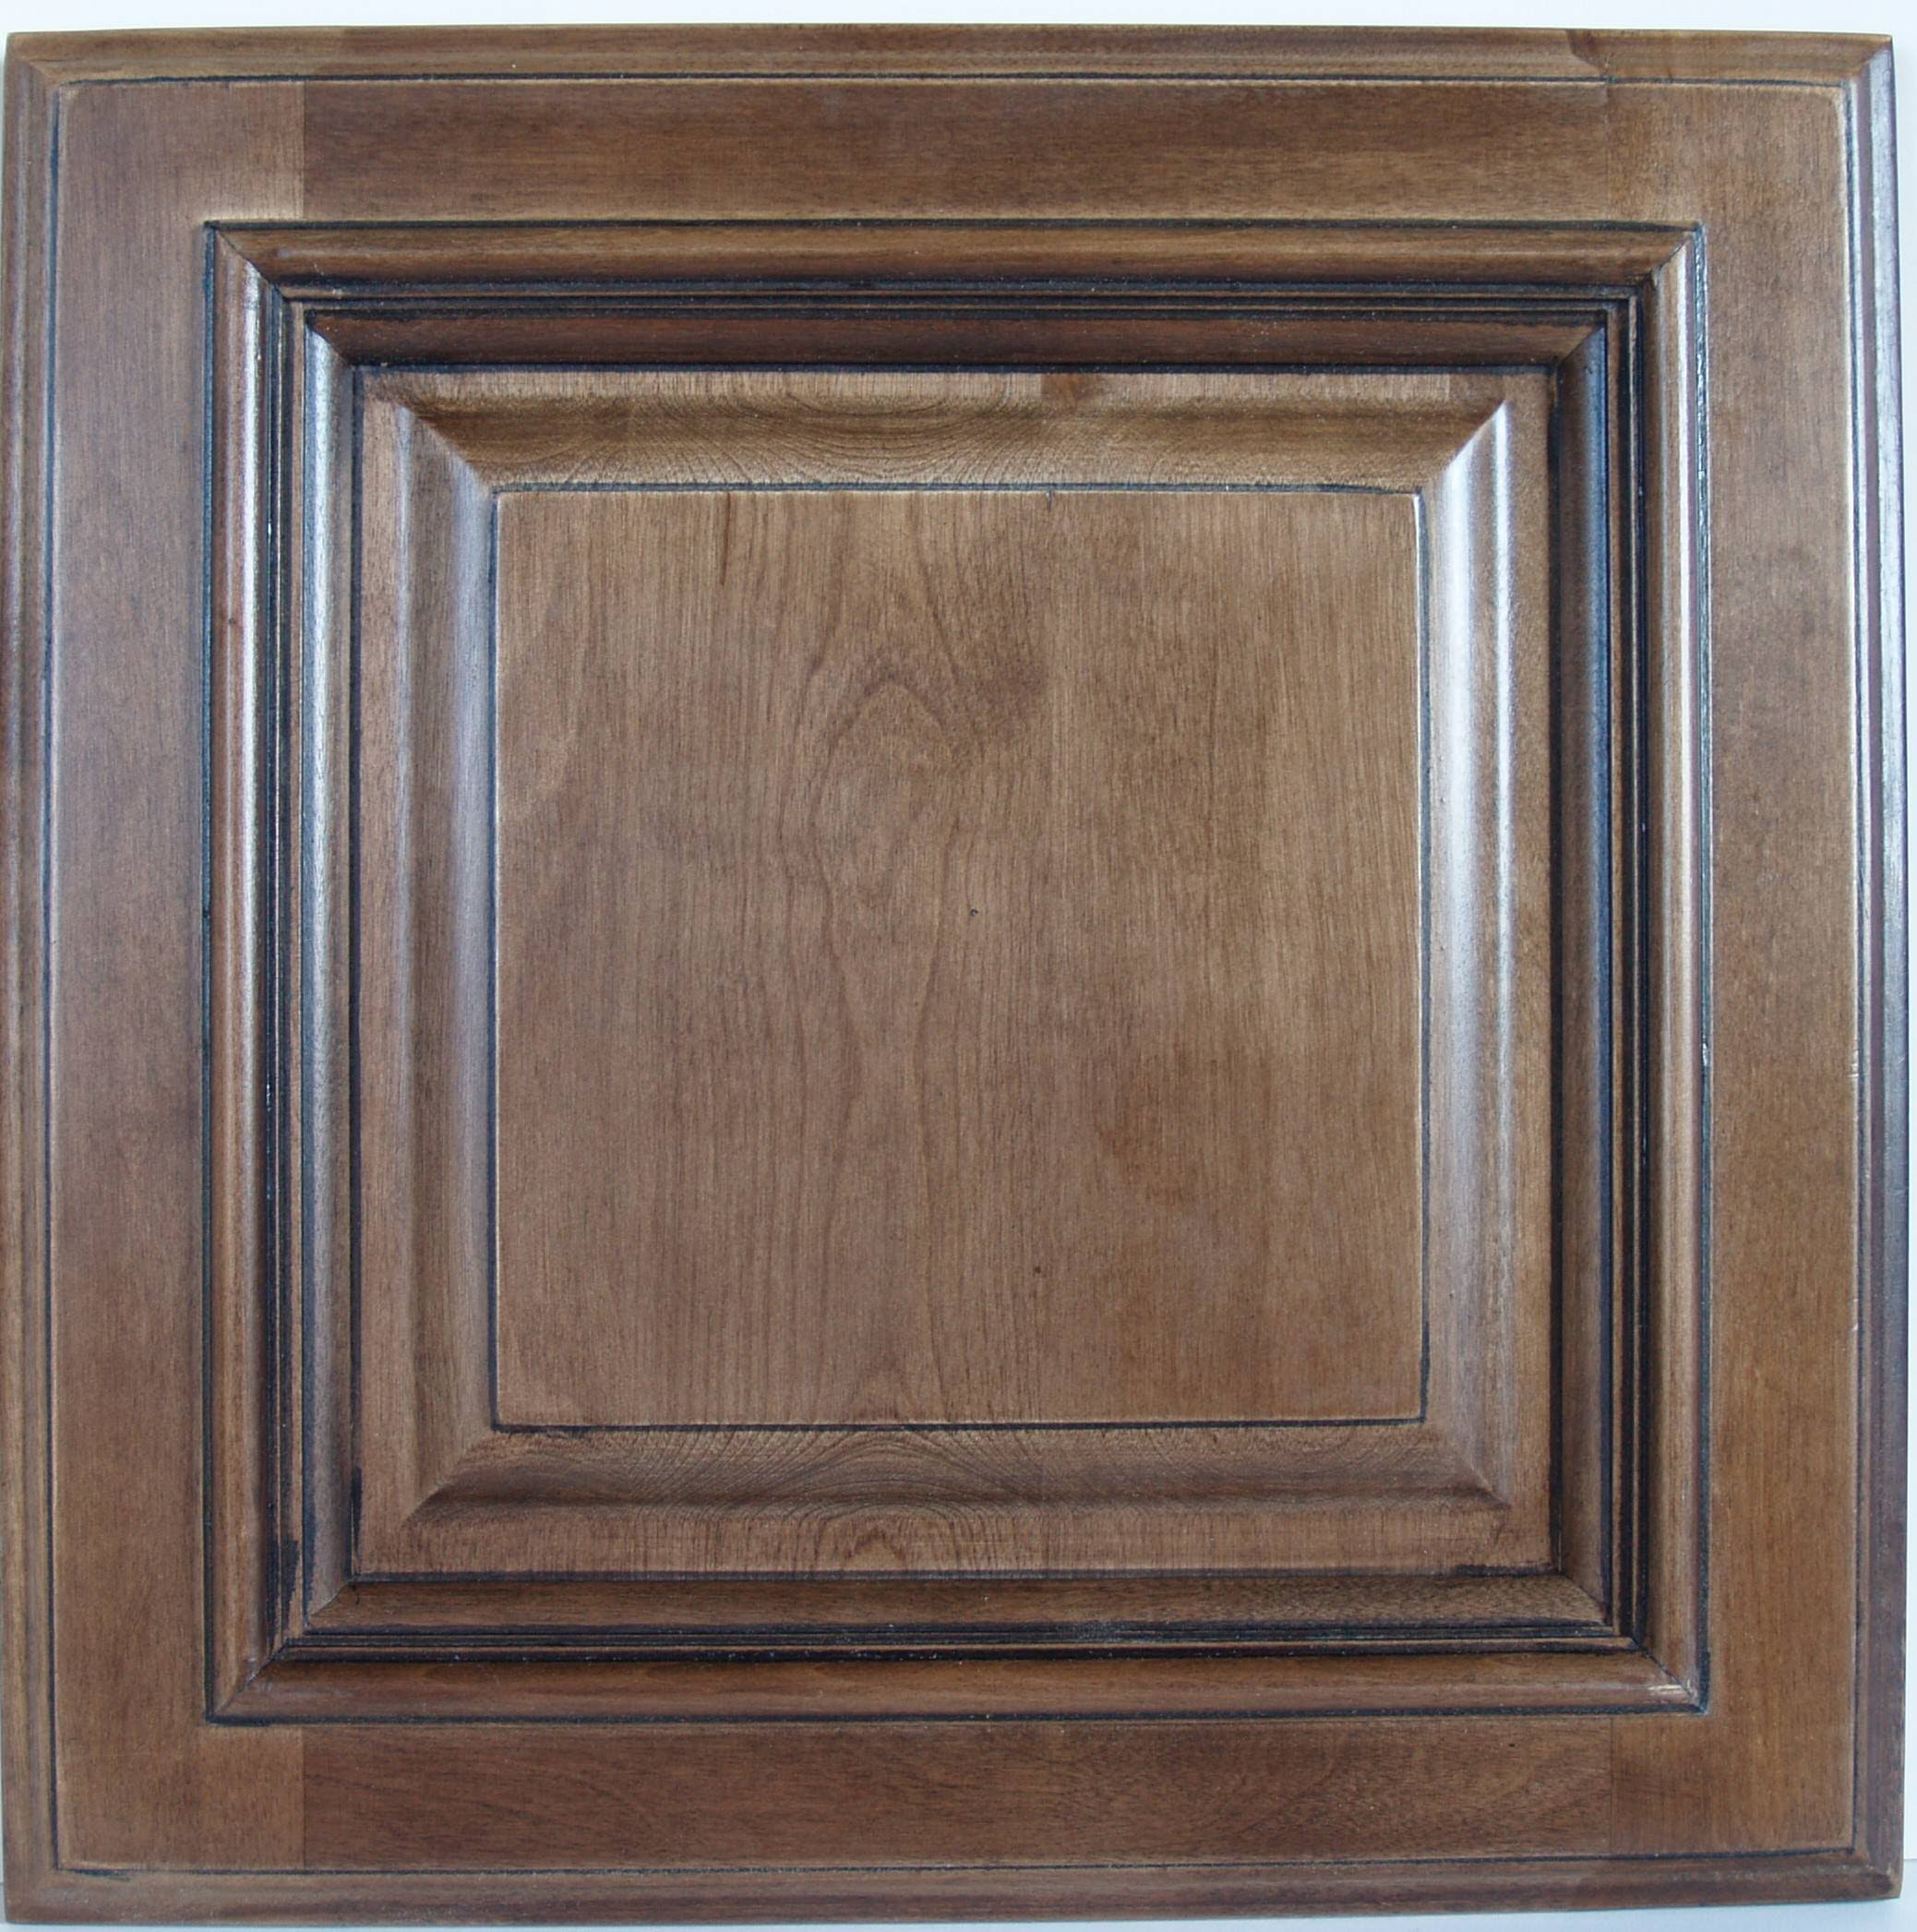 Elegant This door is solid maple raised panel and has a Chestnut glaze finish for a rich look The cabinet is an all wood construction no particle board